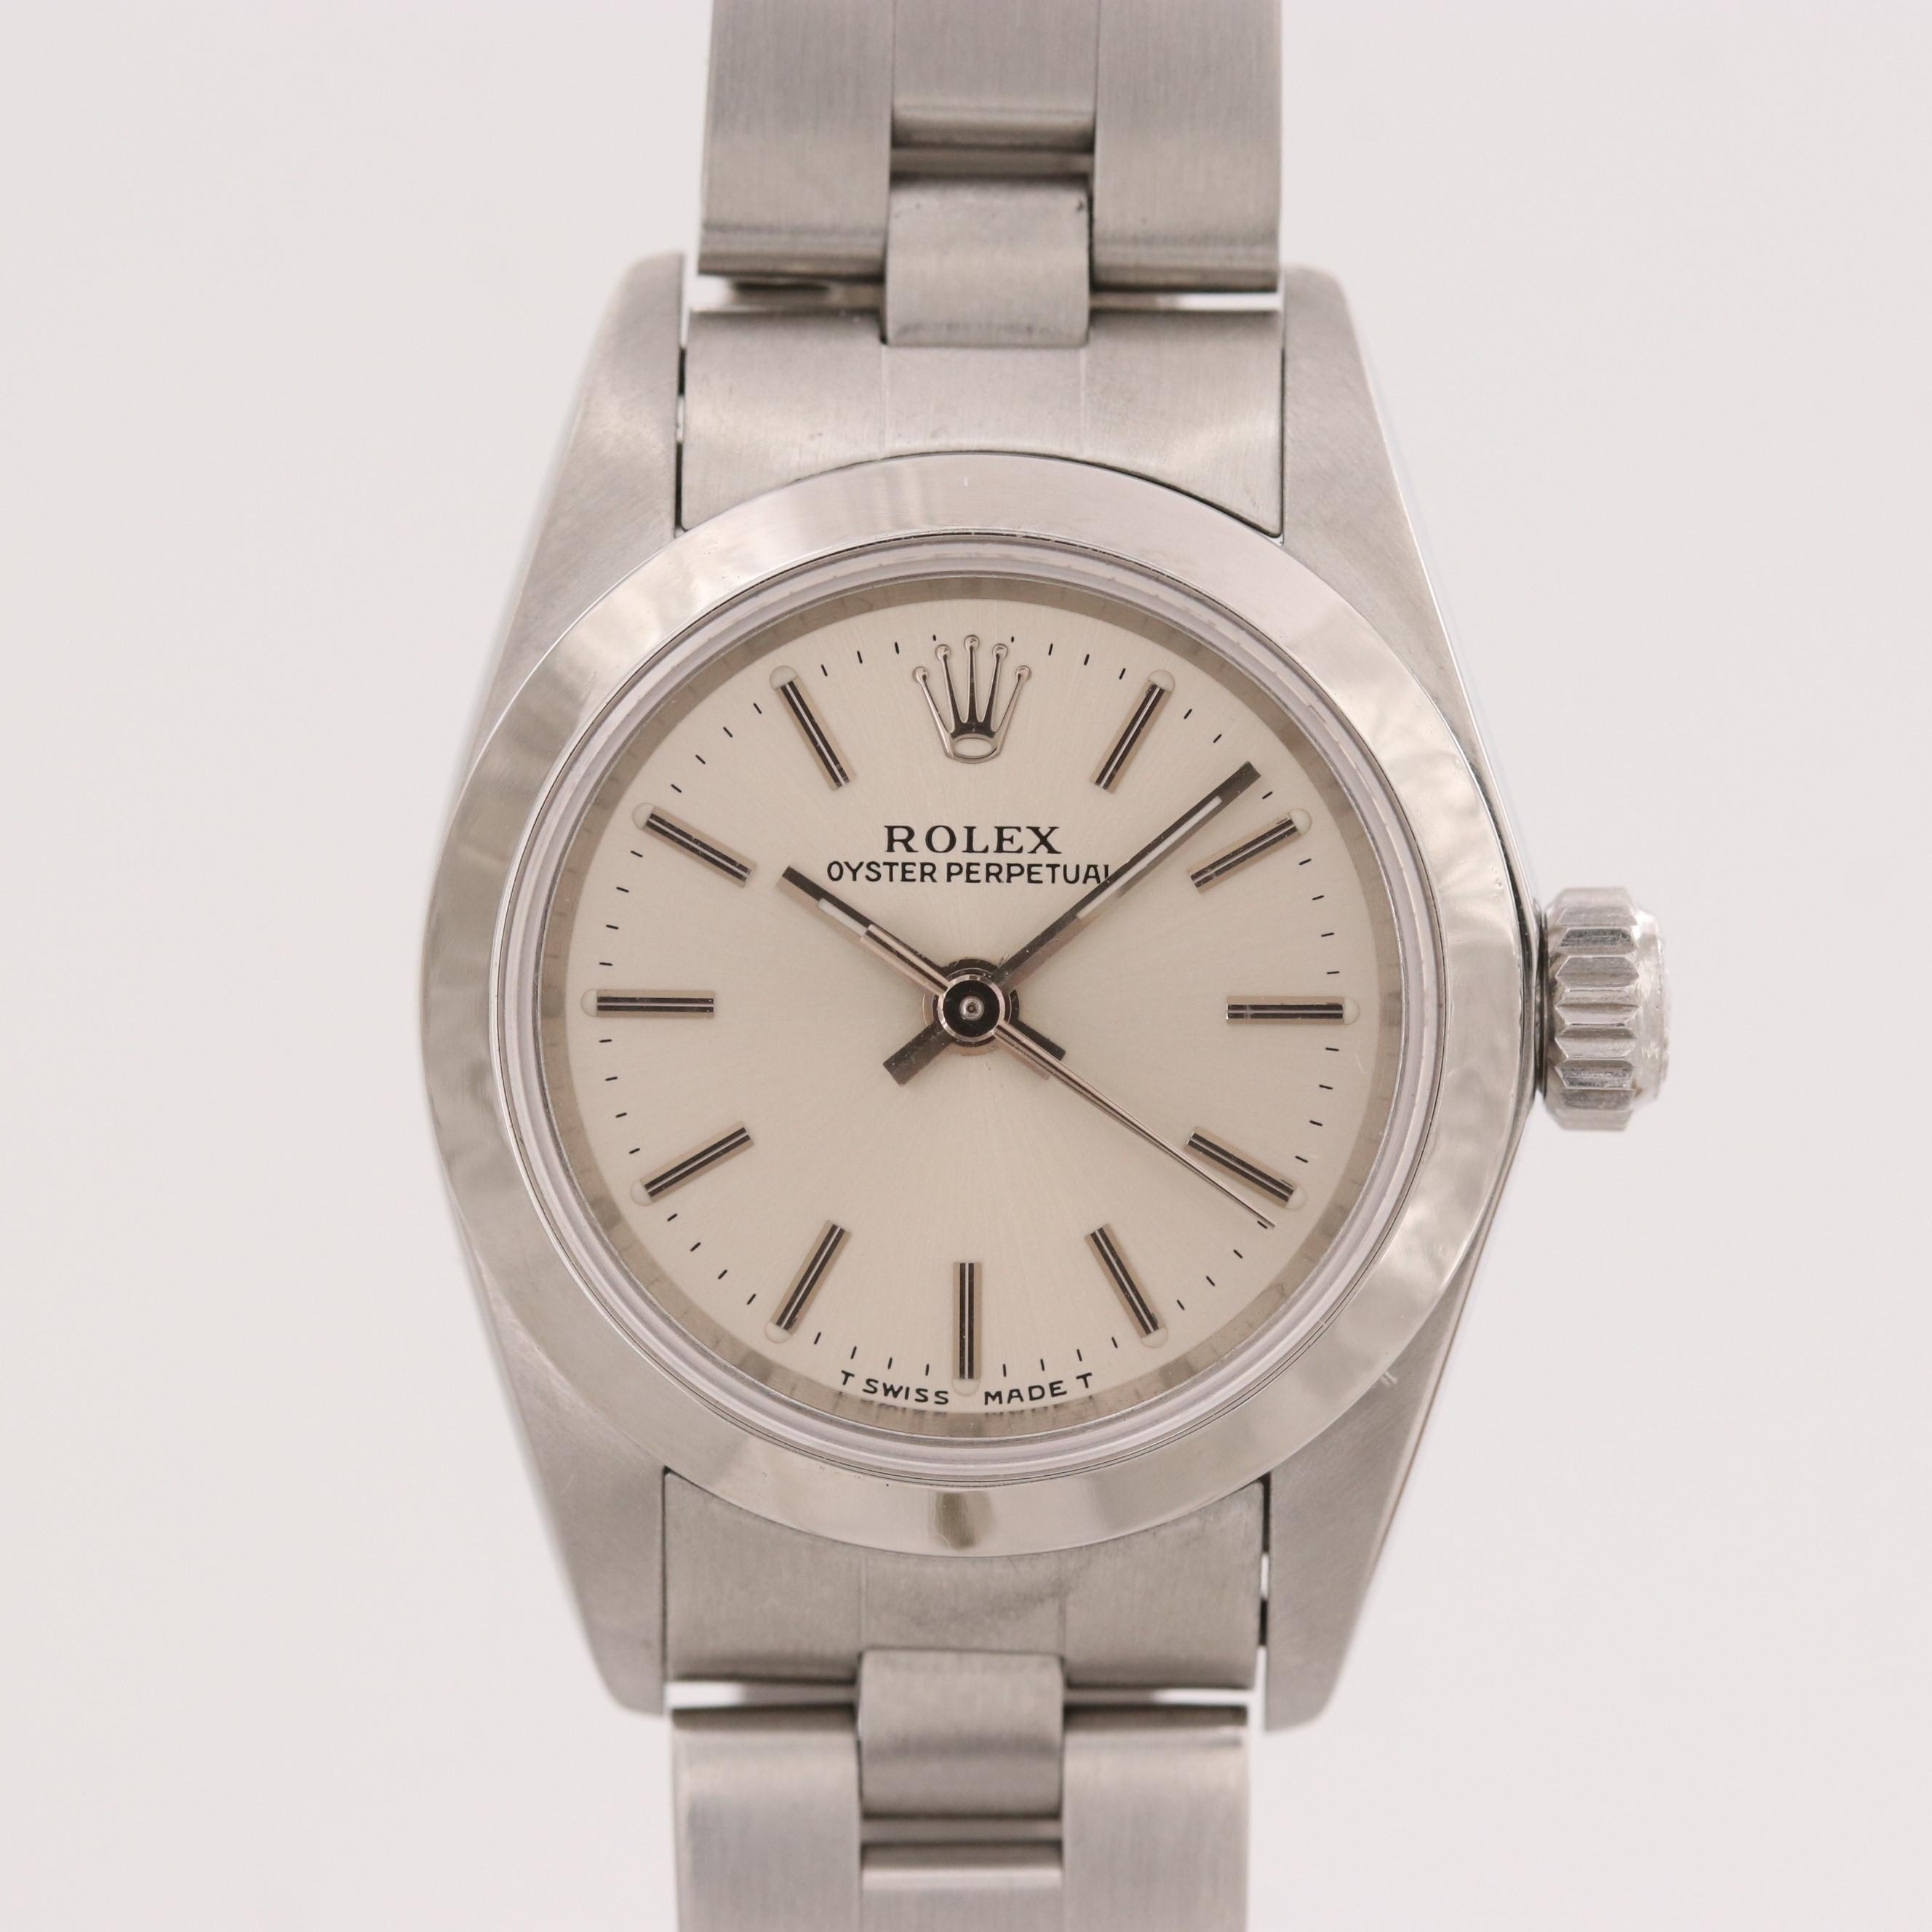 Rolex Oyster Perpetual Stainless Steel Automatic Wristwatch, 1996